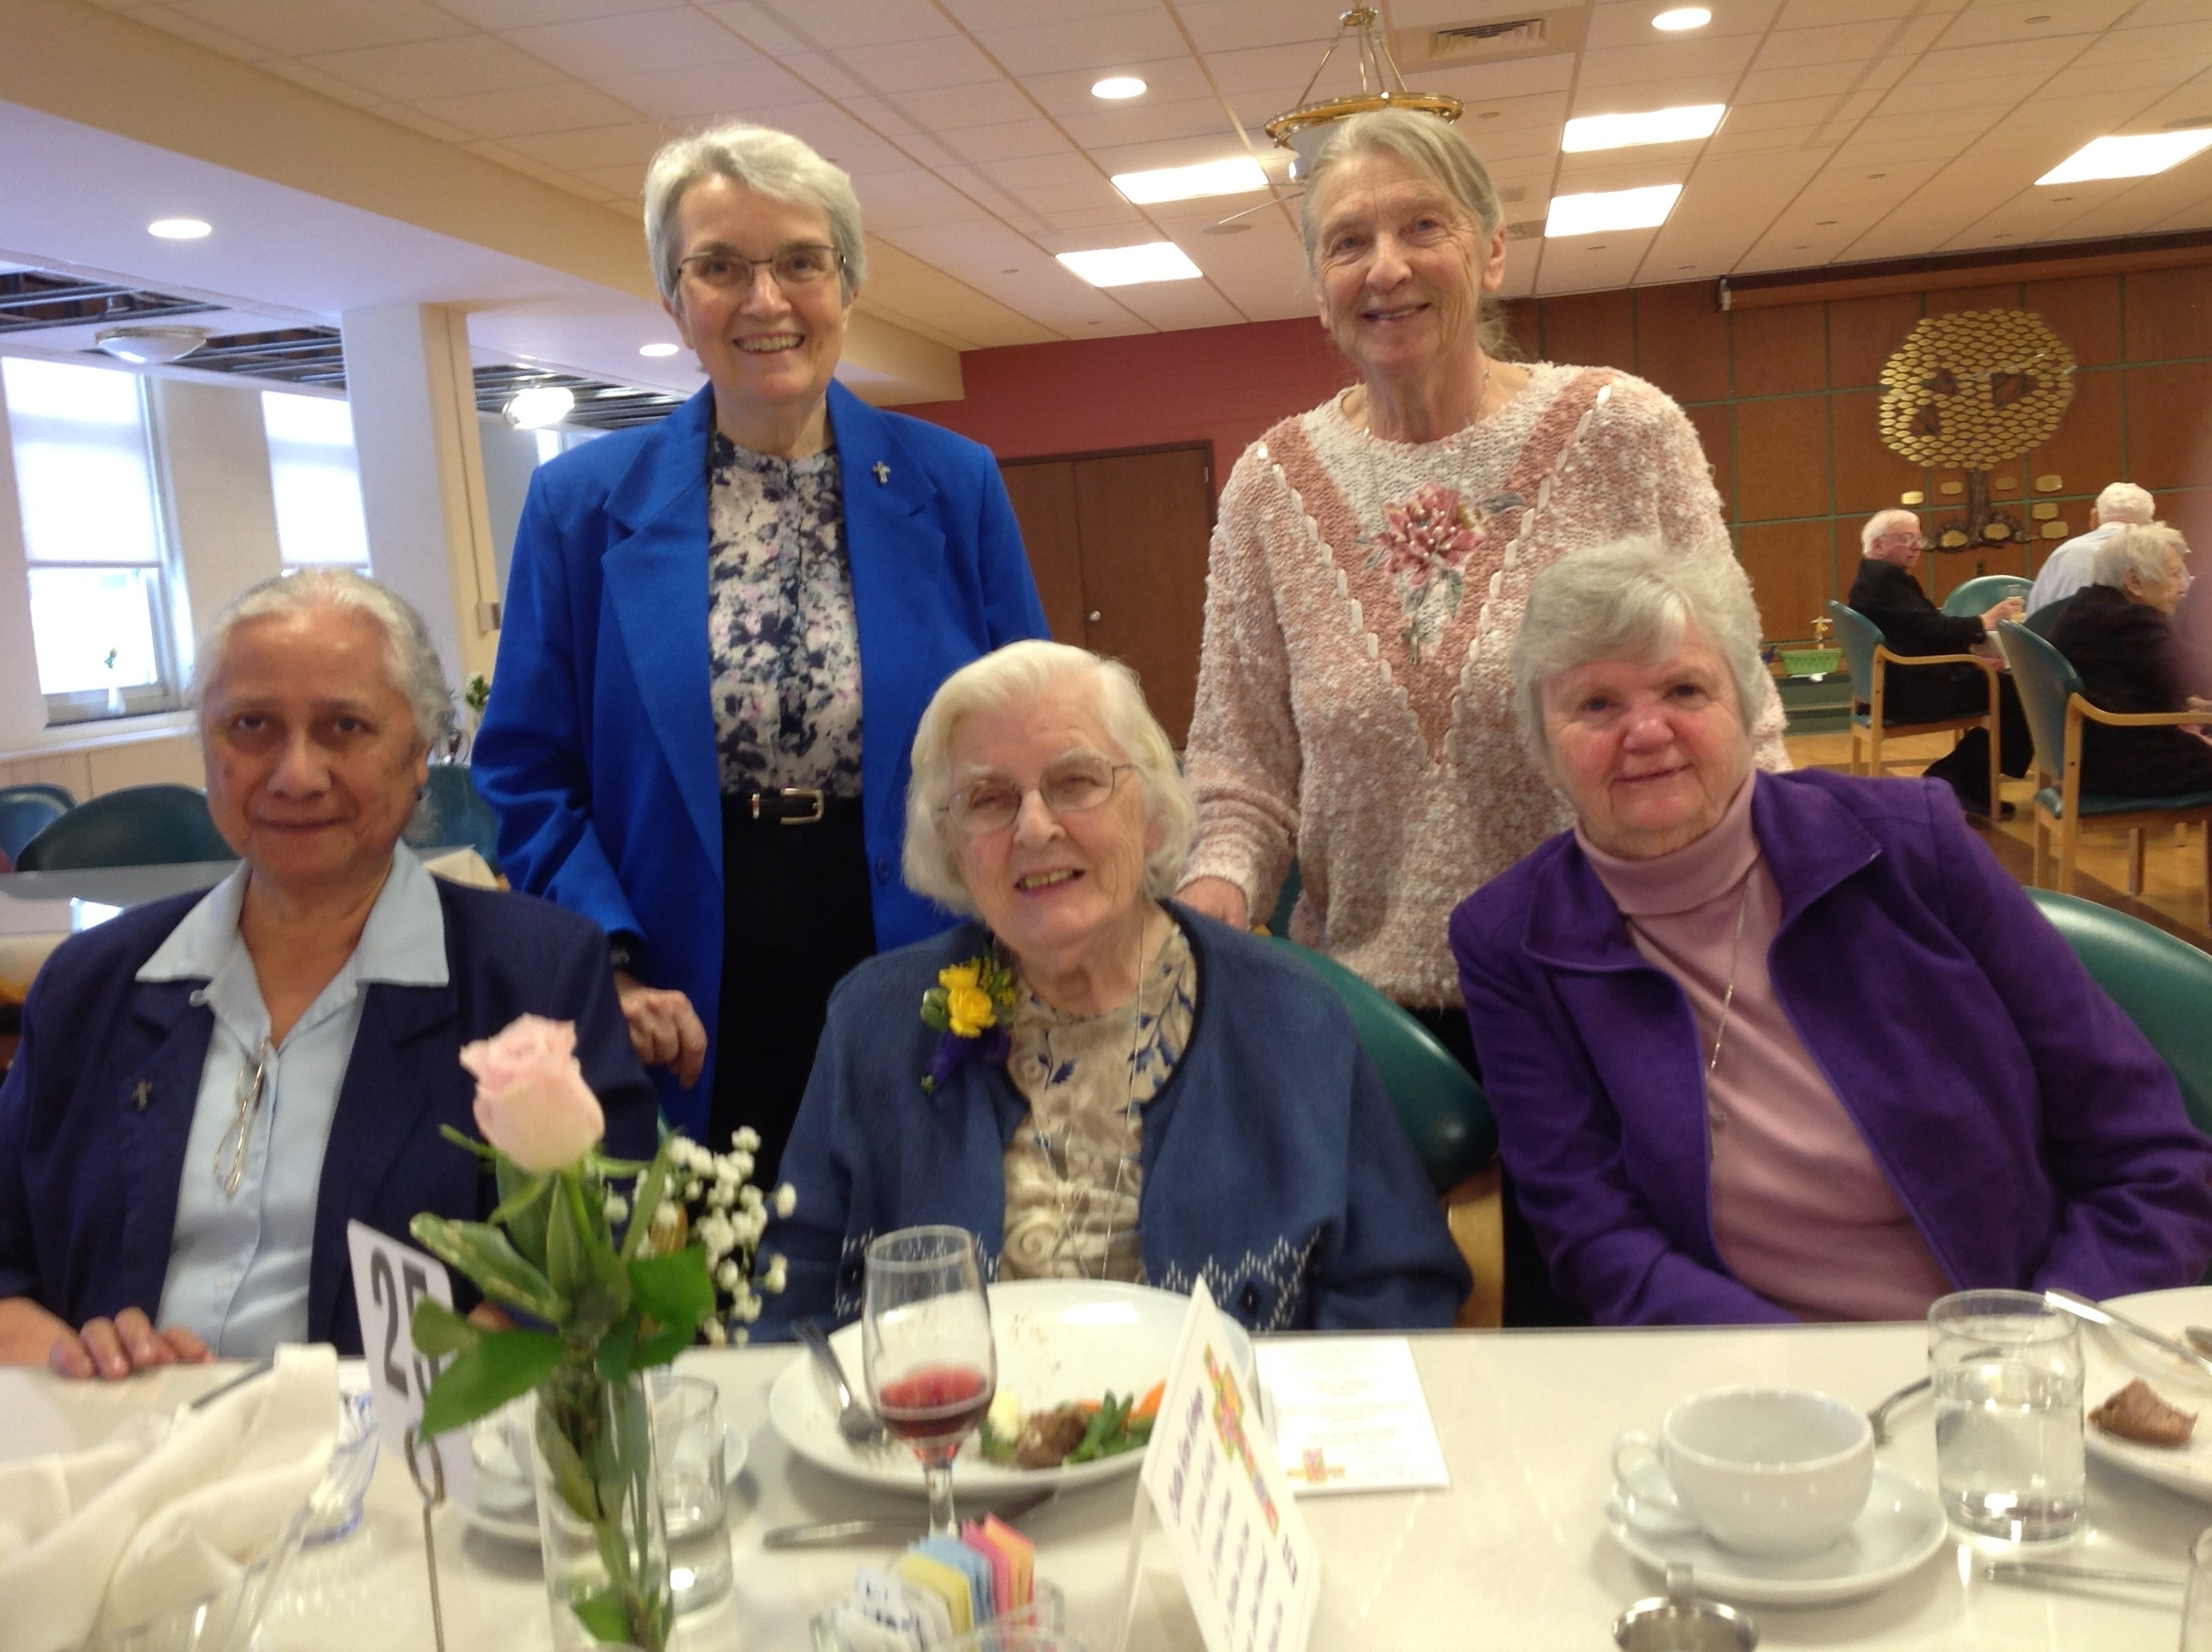 Sister Mary Ancillita (front, center) with her invited guests: (clockwise from left) Sisters M. Aloisia Vea, Virginia Fornasa, Maria DeWulf, and Christina MacLean.